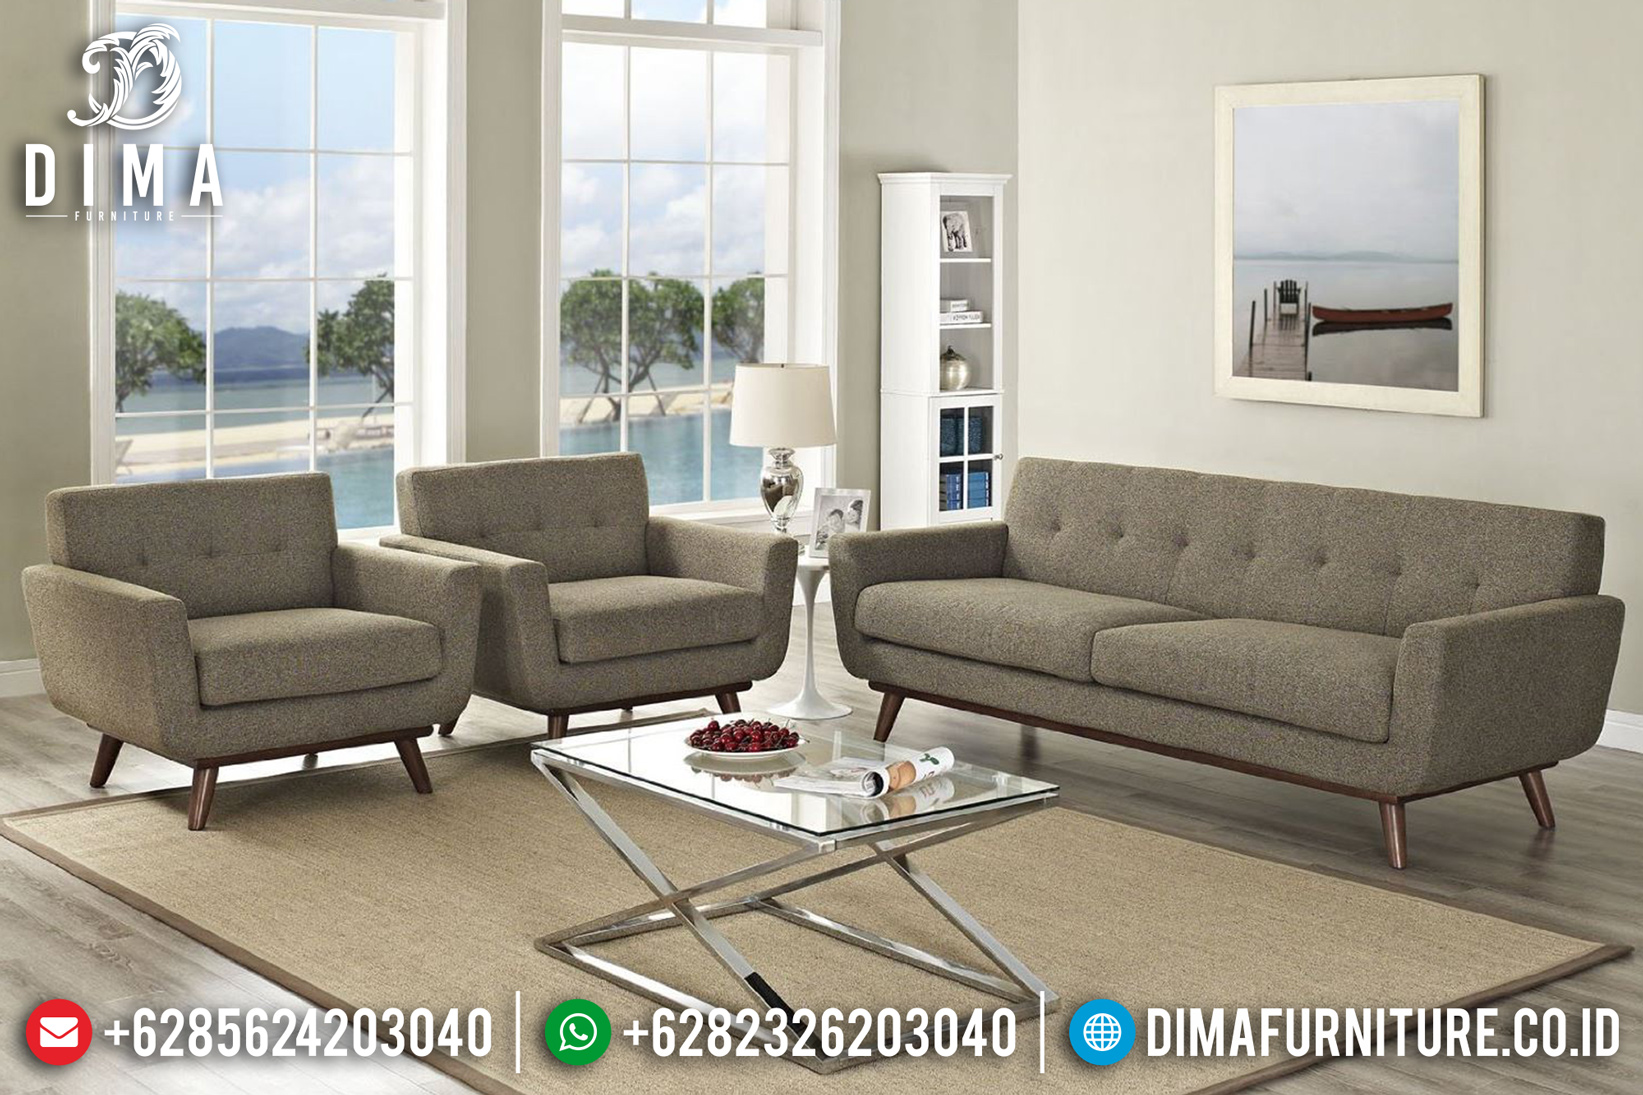 Model Sofa Tamu Jepara 2019-2020 005 Dima Furniture Jepara